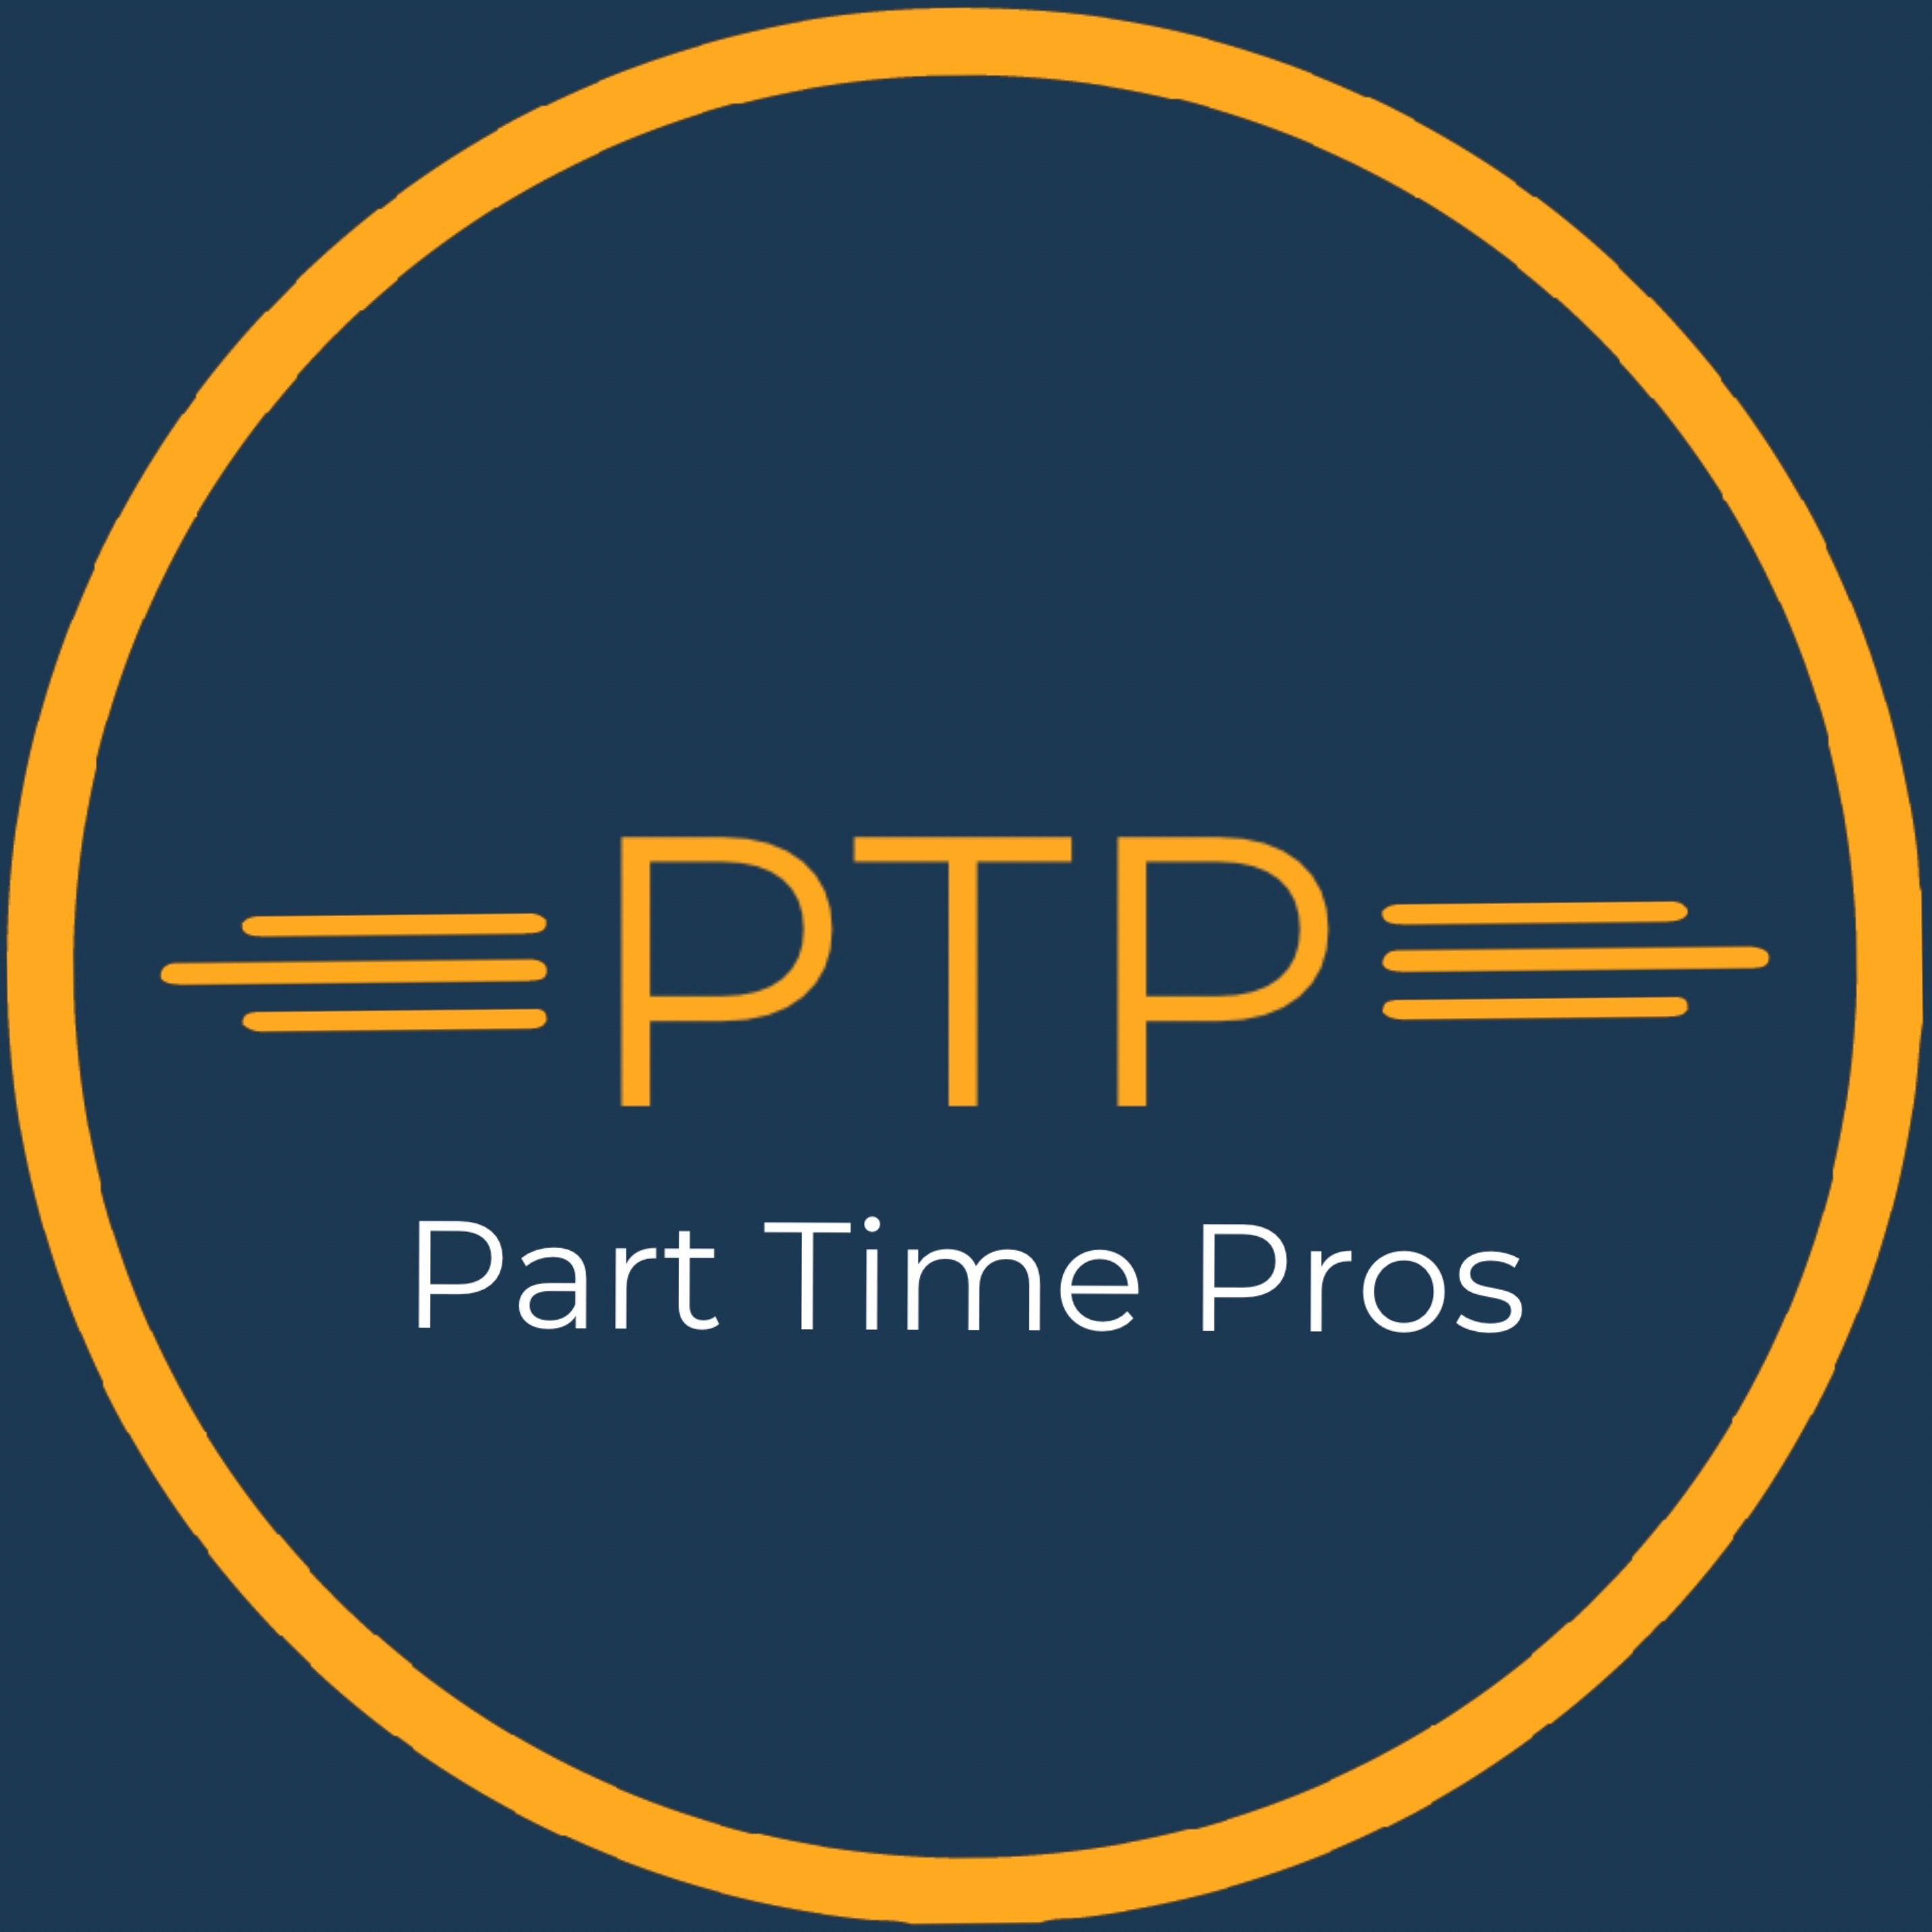 Part Time Pros Podcast